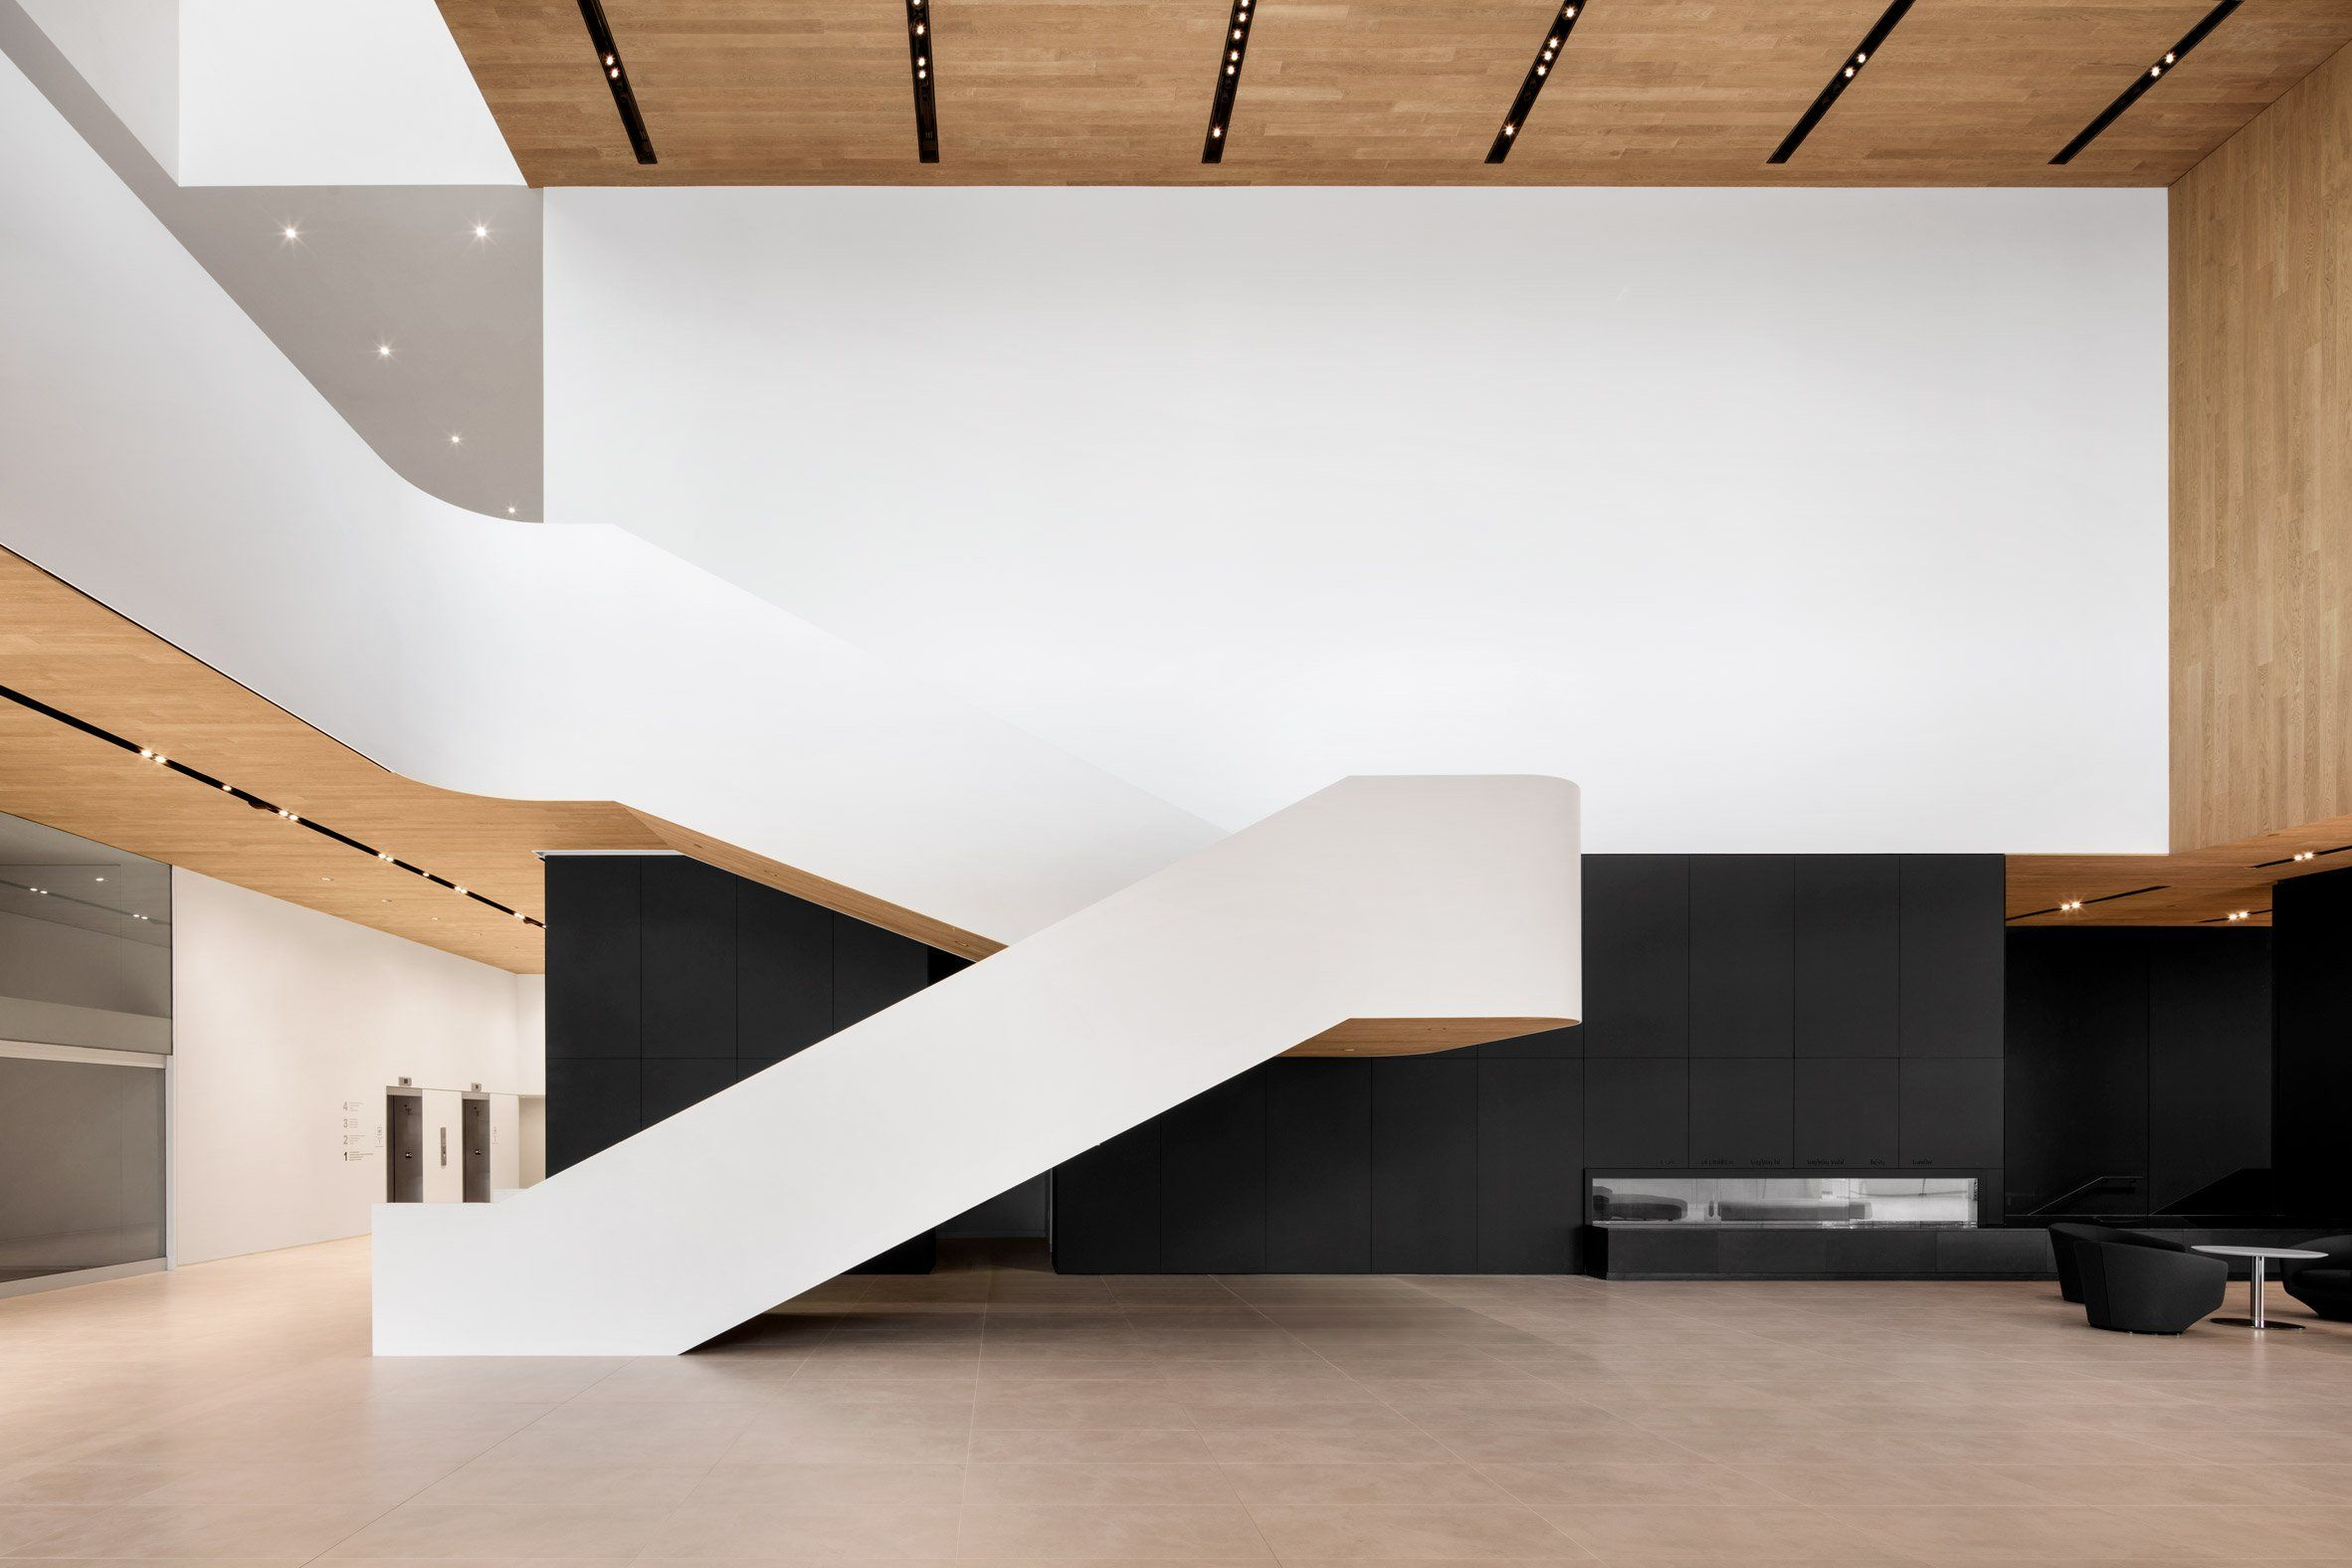 Remai Modern Museum In Canadian Prairies Comprises Stacked Volumes Museum Interior Art Museums Interior Art Galleries Architecture